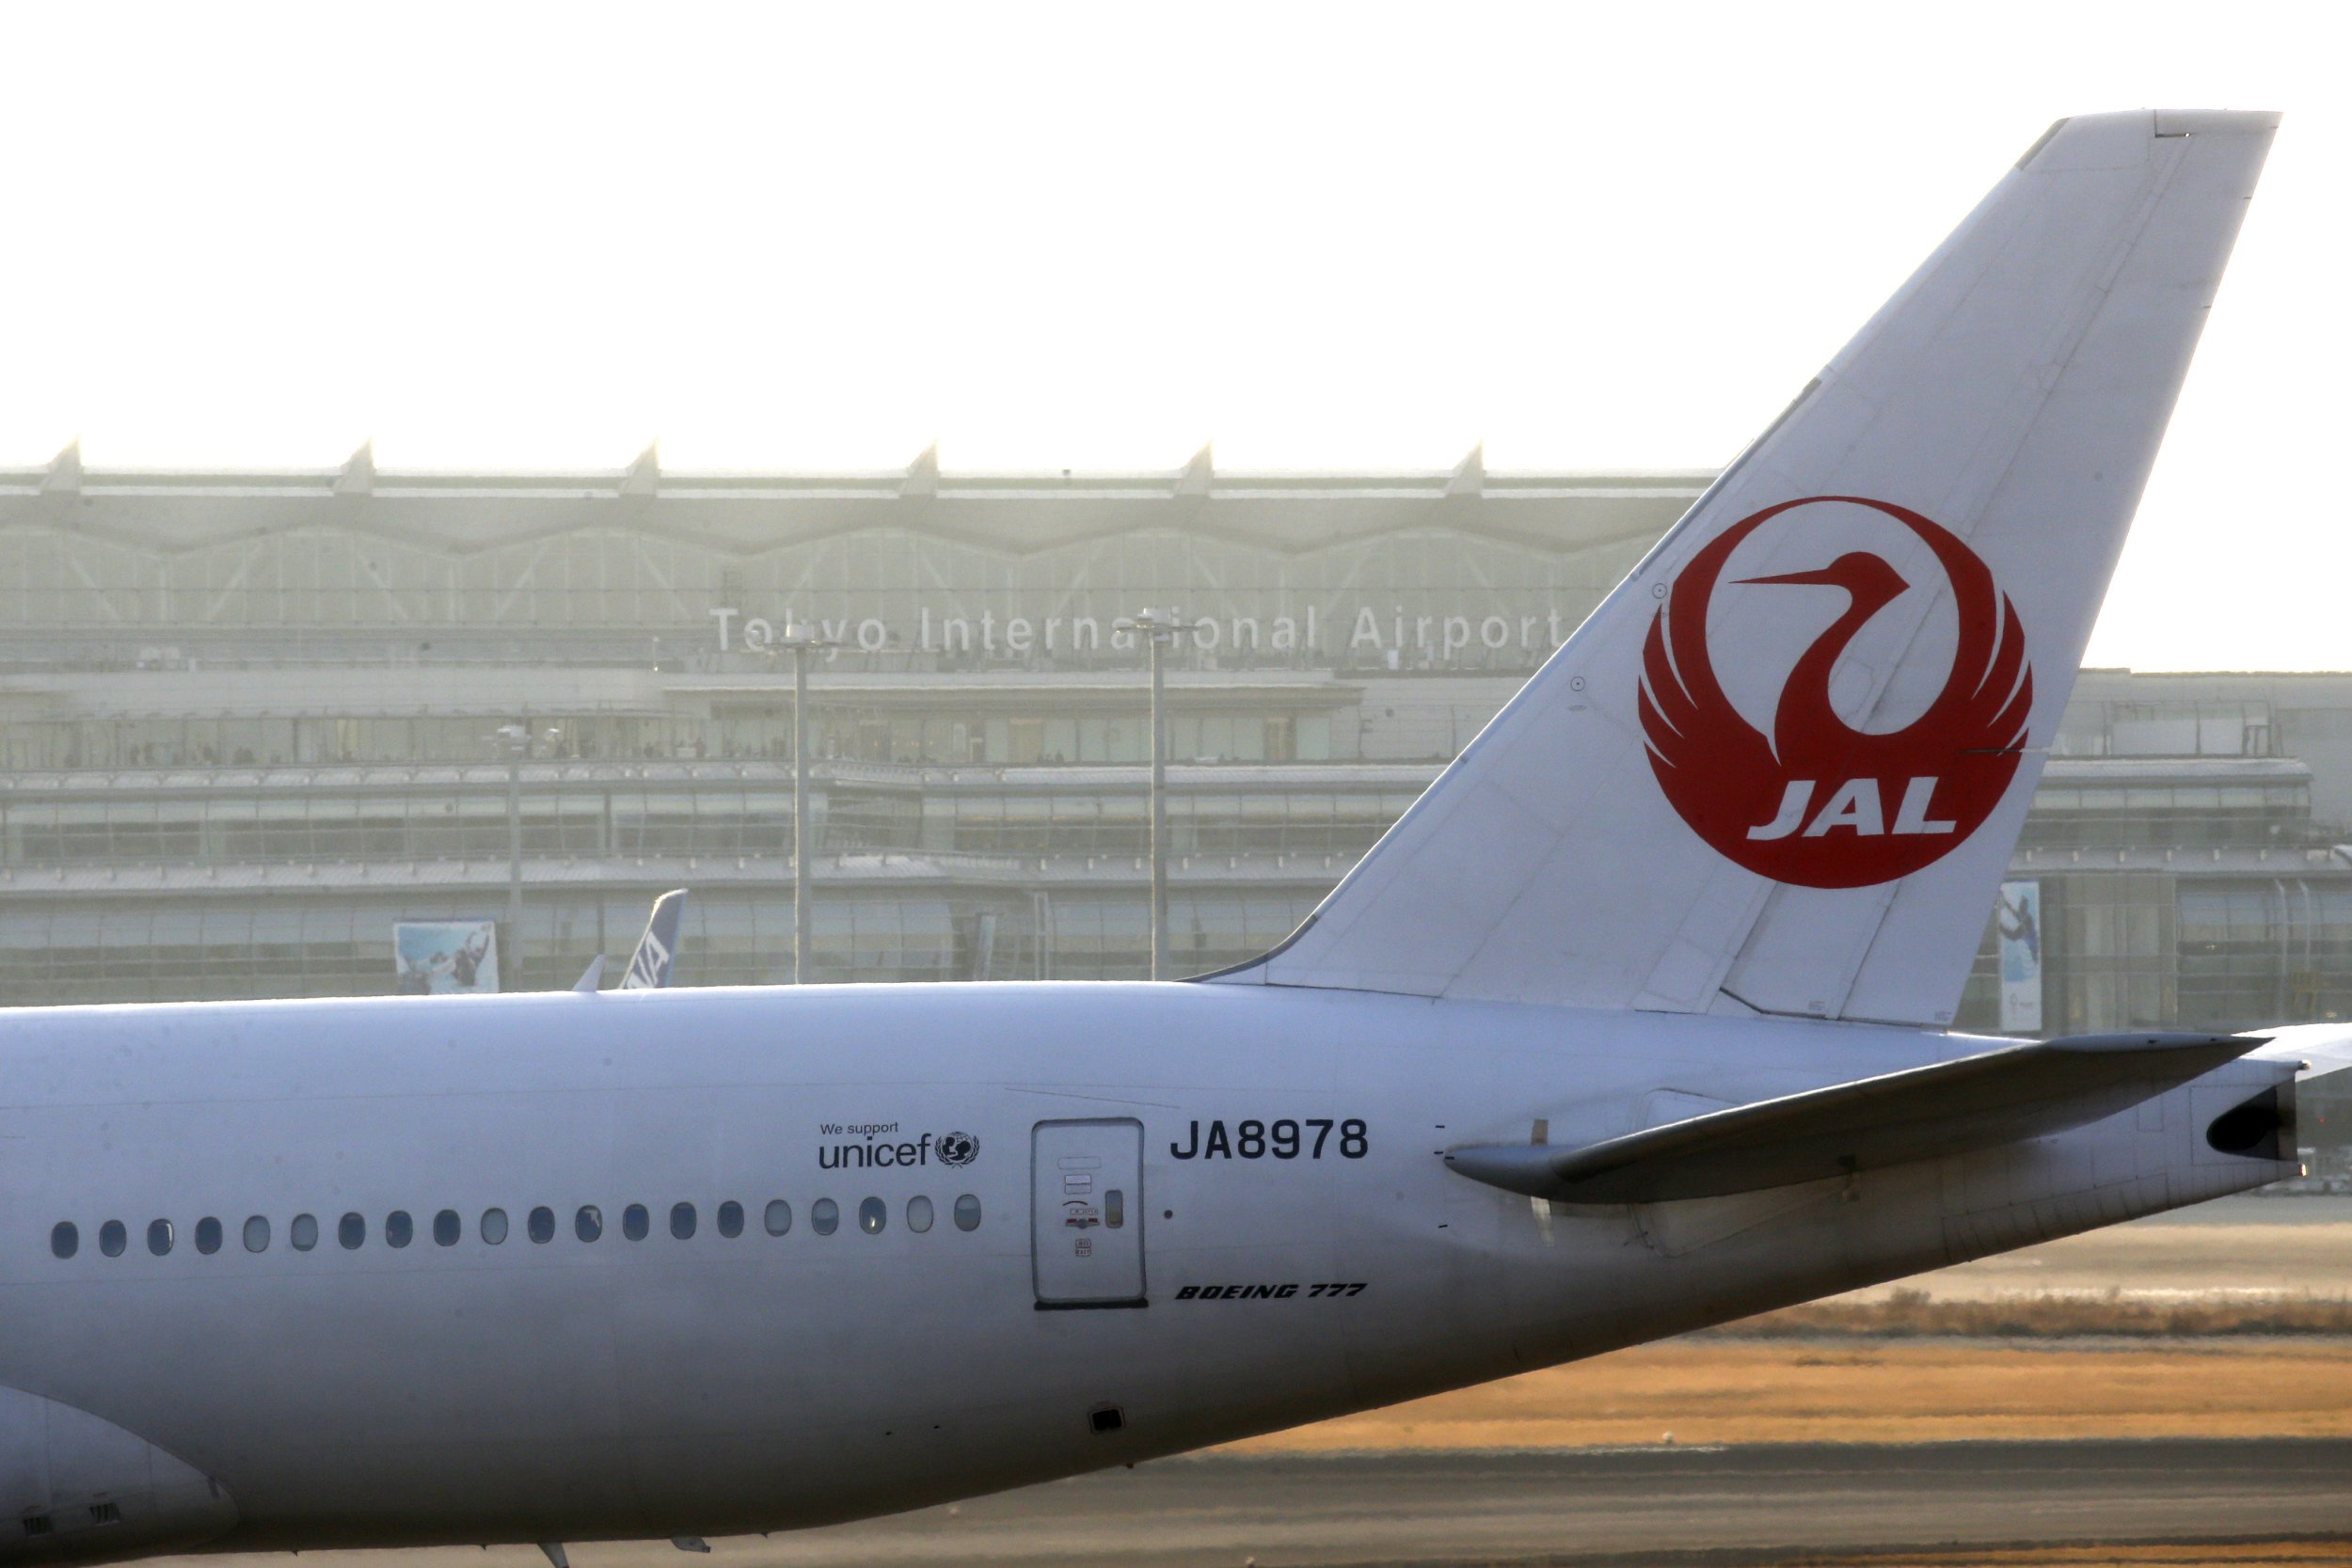 JAL's airplane is seen at Haneda Airport in Tokyo, Japan Feburuary 9, 2018. (Photo by Hitoshi Yamada/NurPhoto via Getty Images)